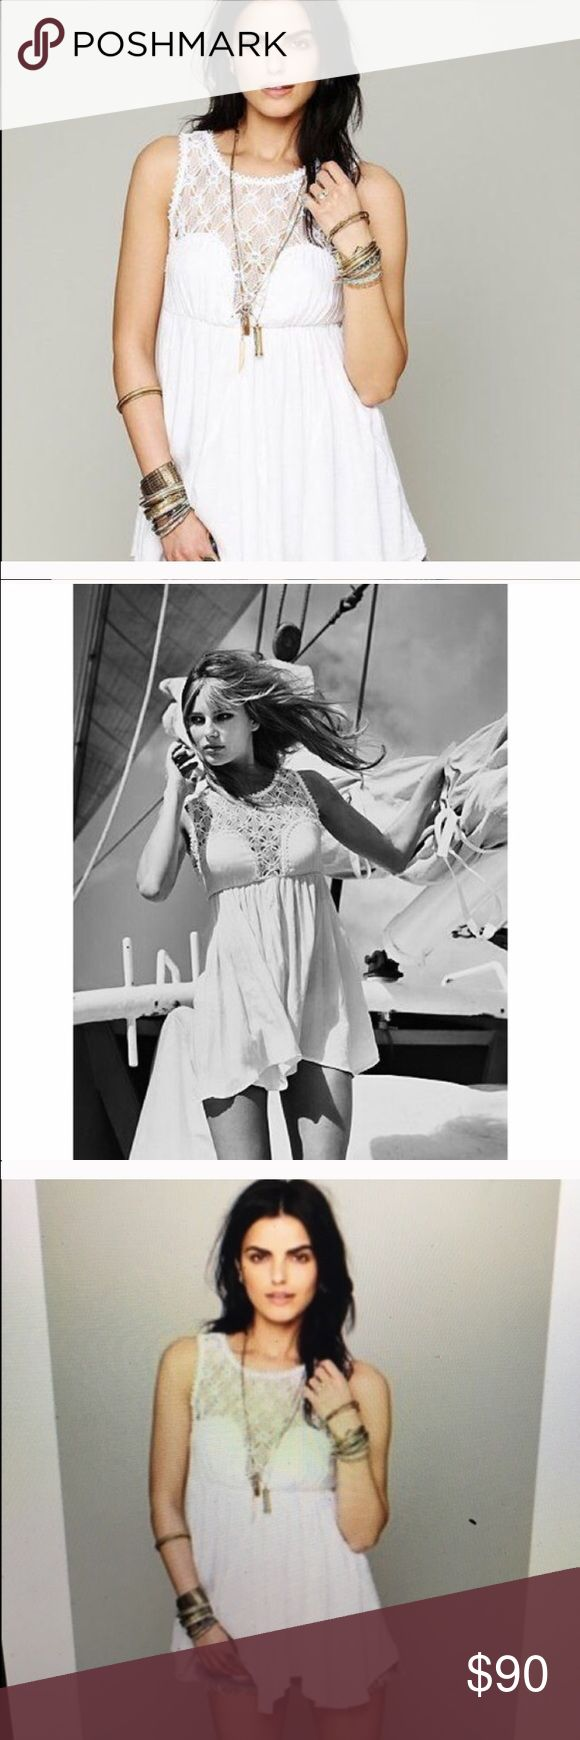 Free People Lolita Syndrome Dress white New Lolita Syndrome dress in white super cute with shorts jeans or alone Free People Dresses Mini